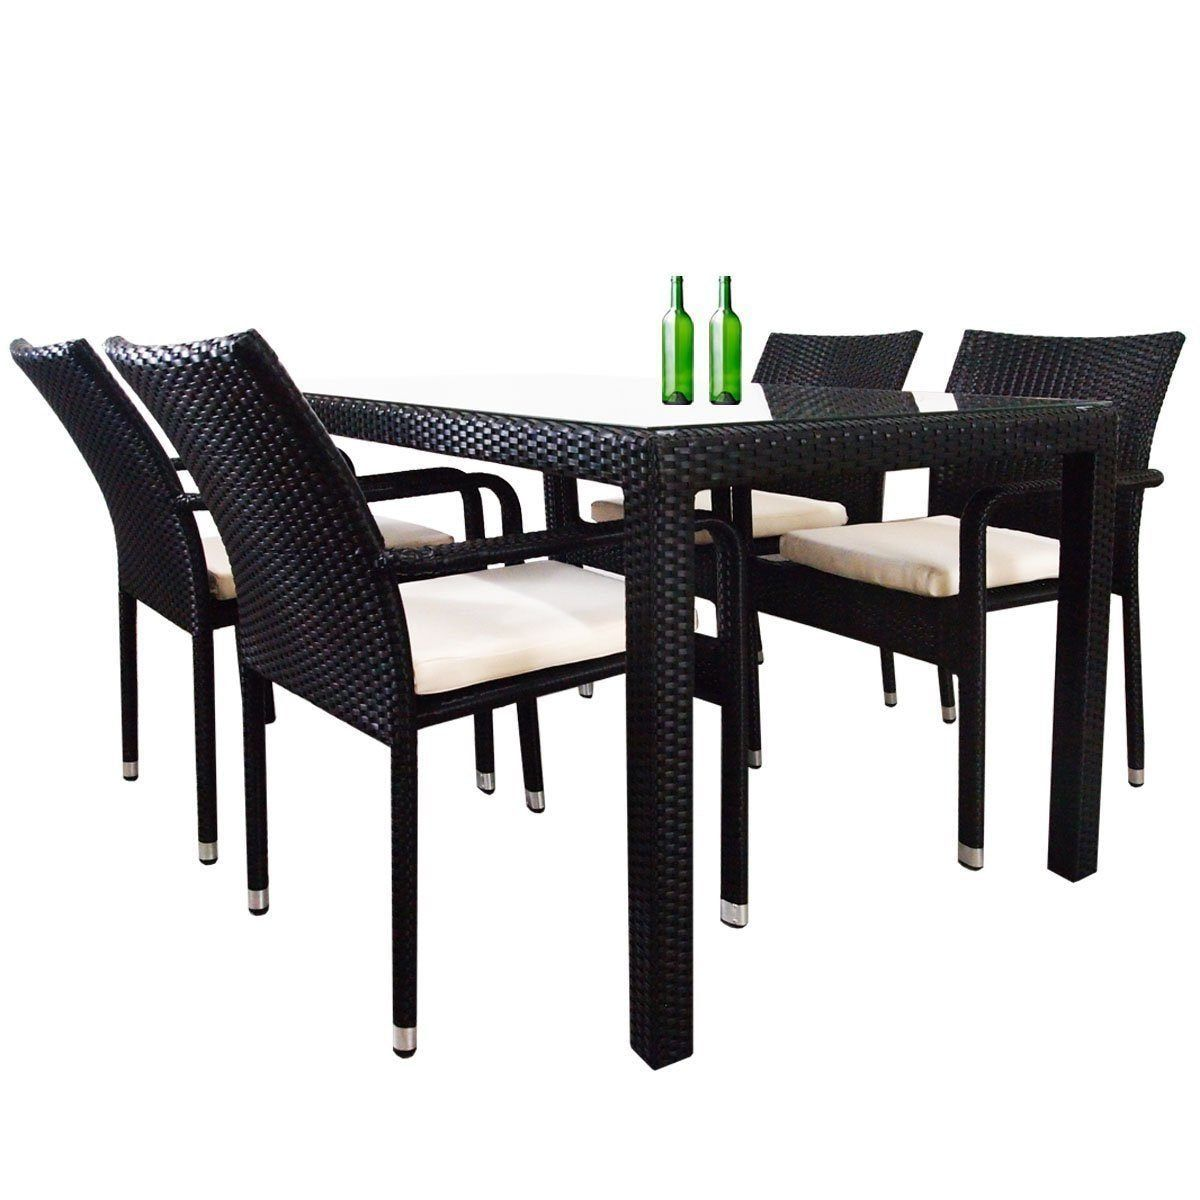 Boulevard 4 Chair Dining Set, White Cushions